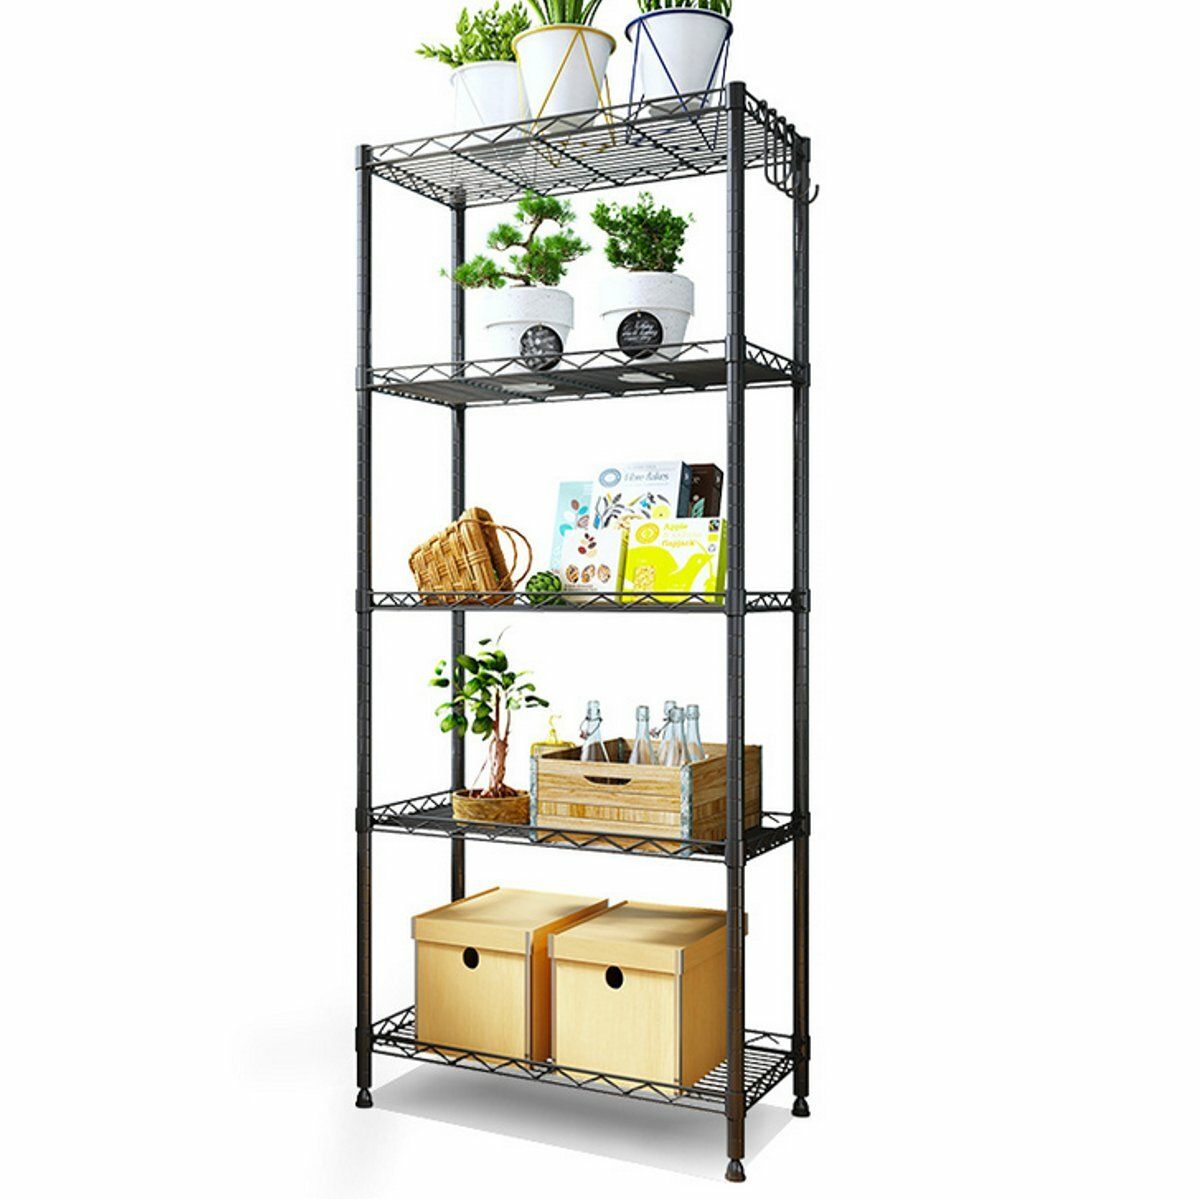 New 5 Tier Steel Wire Shelving Unit Metal Rack Home Kitchen